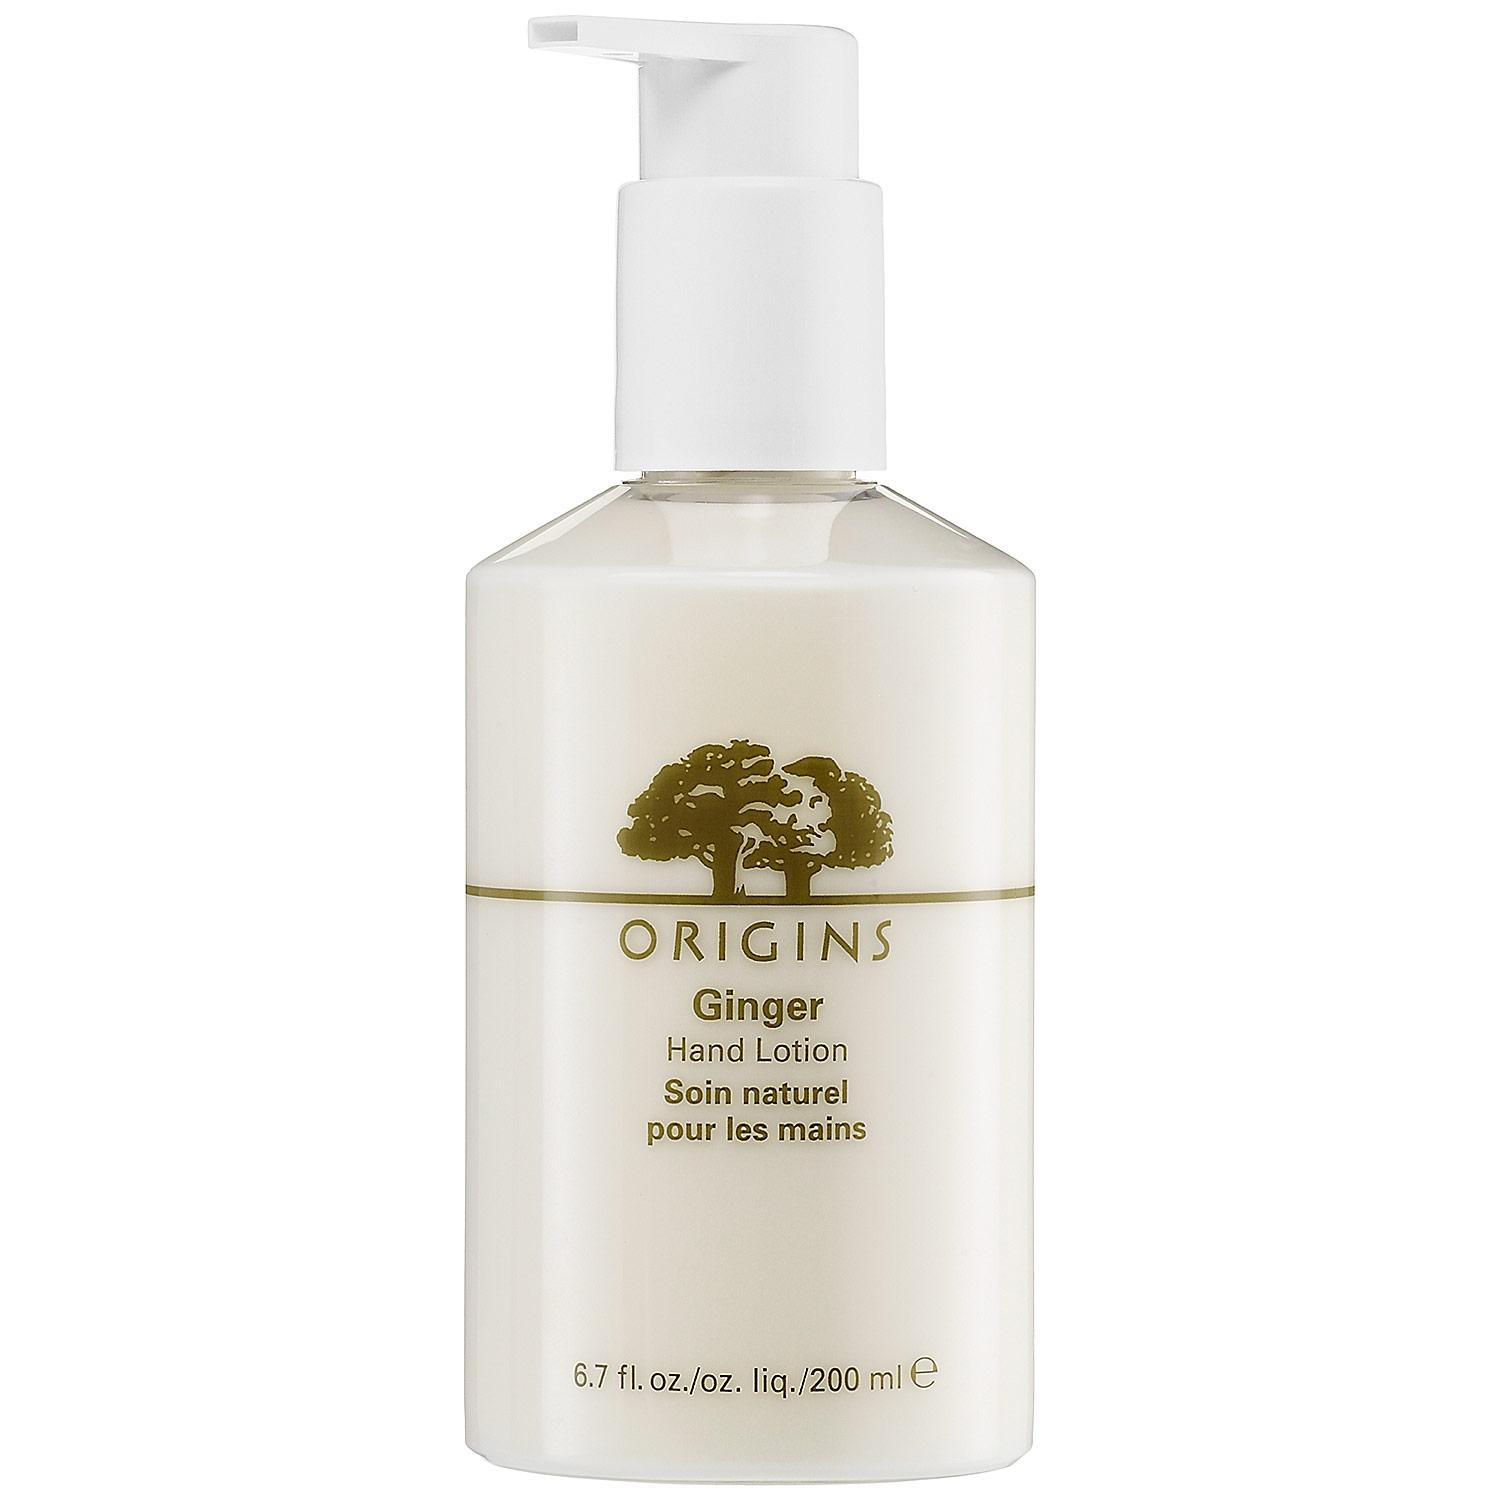 Ginger Hand Lotion